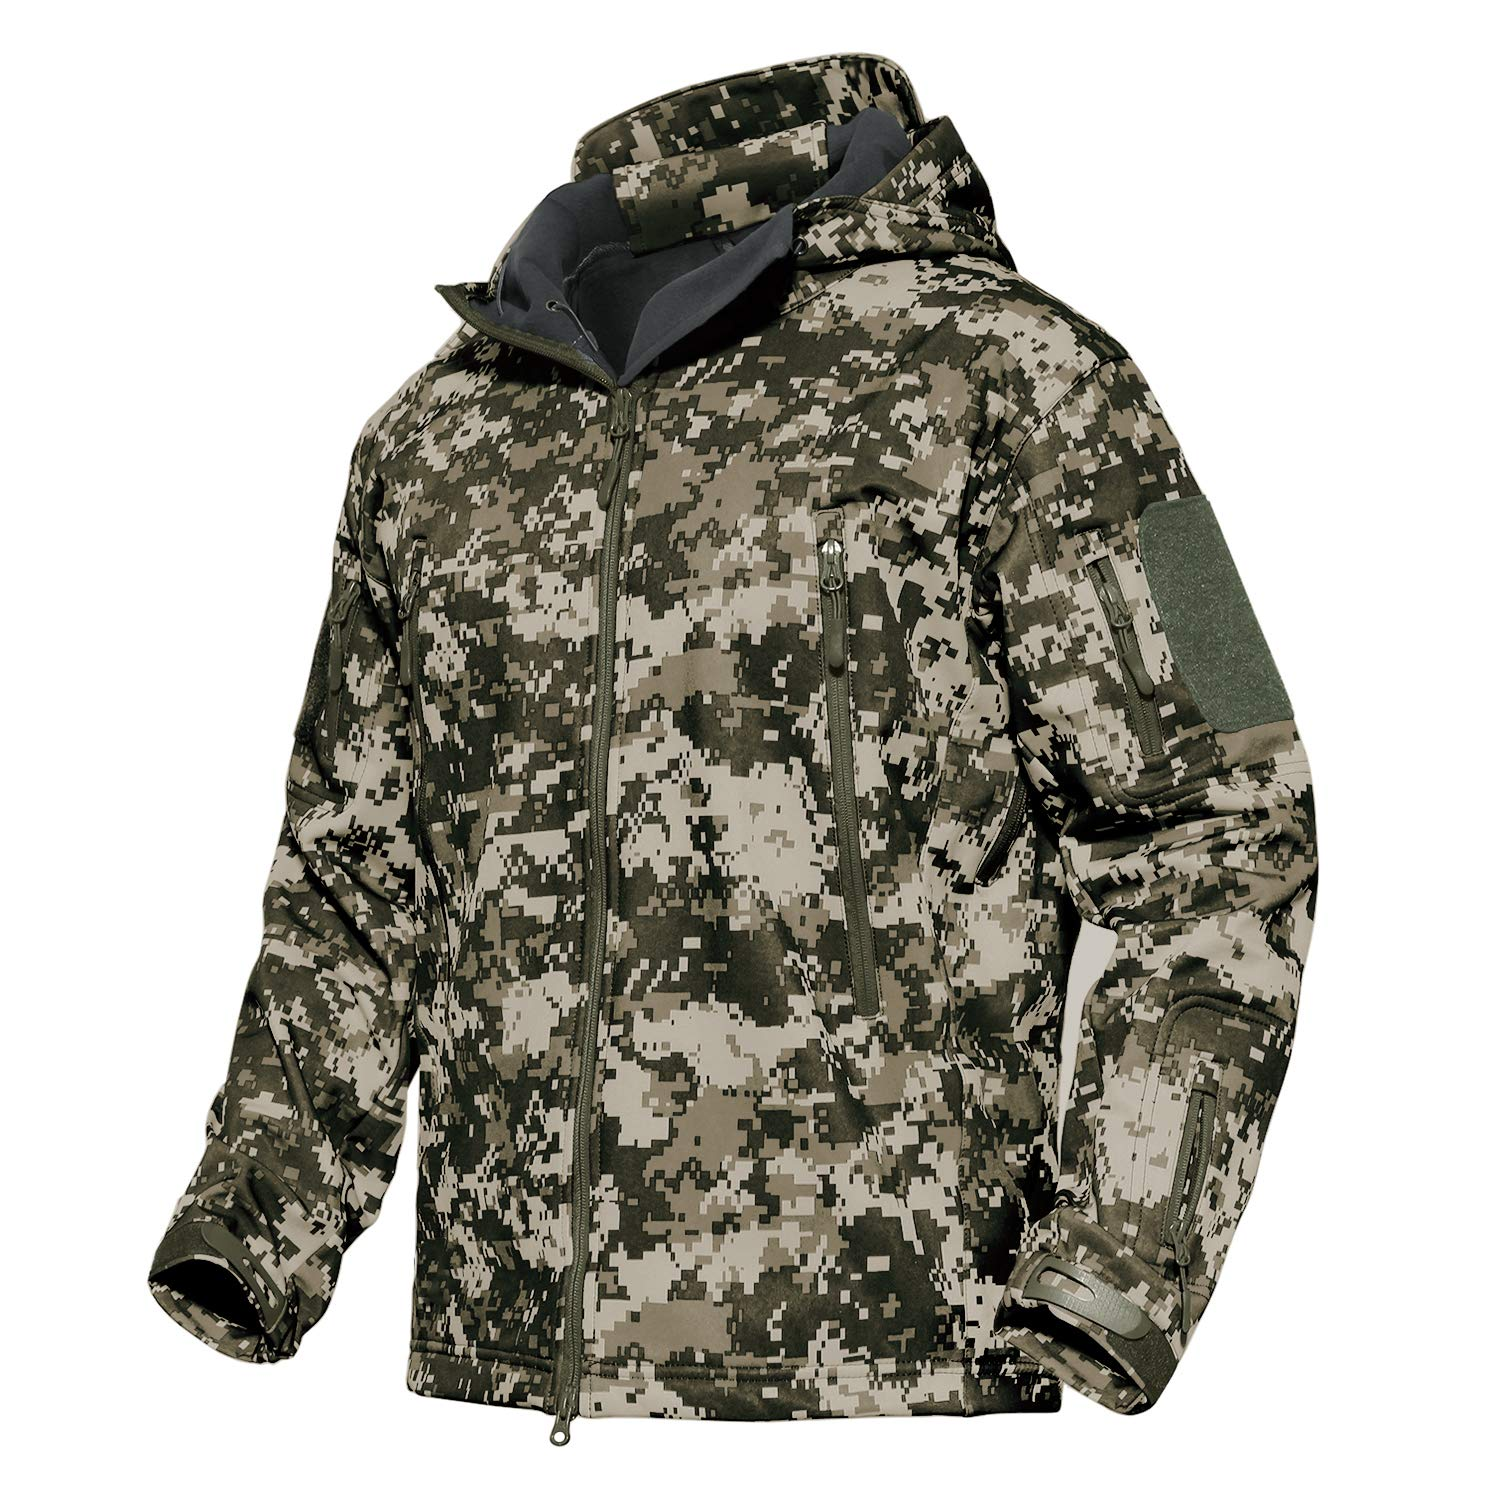 MAGCOMSEN Military Jacket Men Hunting Ski Snow Jacket Camping Jackets Warm Thick Jackets Winter Jacket by MAGCOMSEN